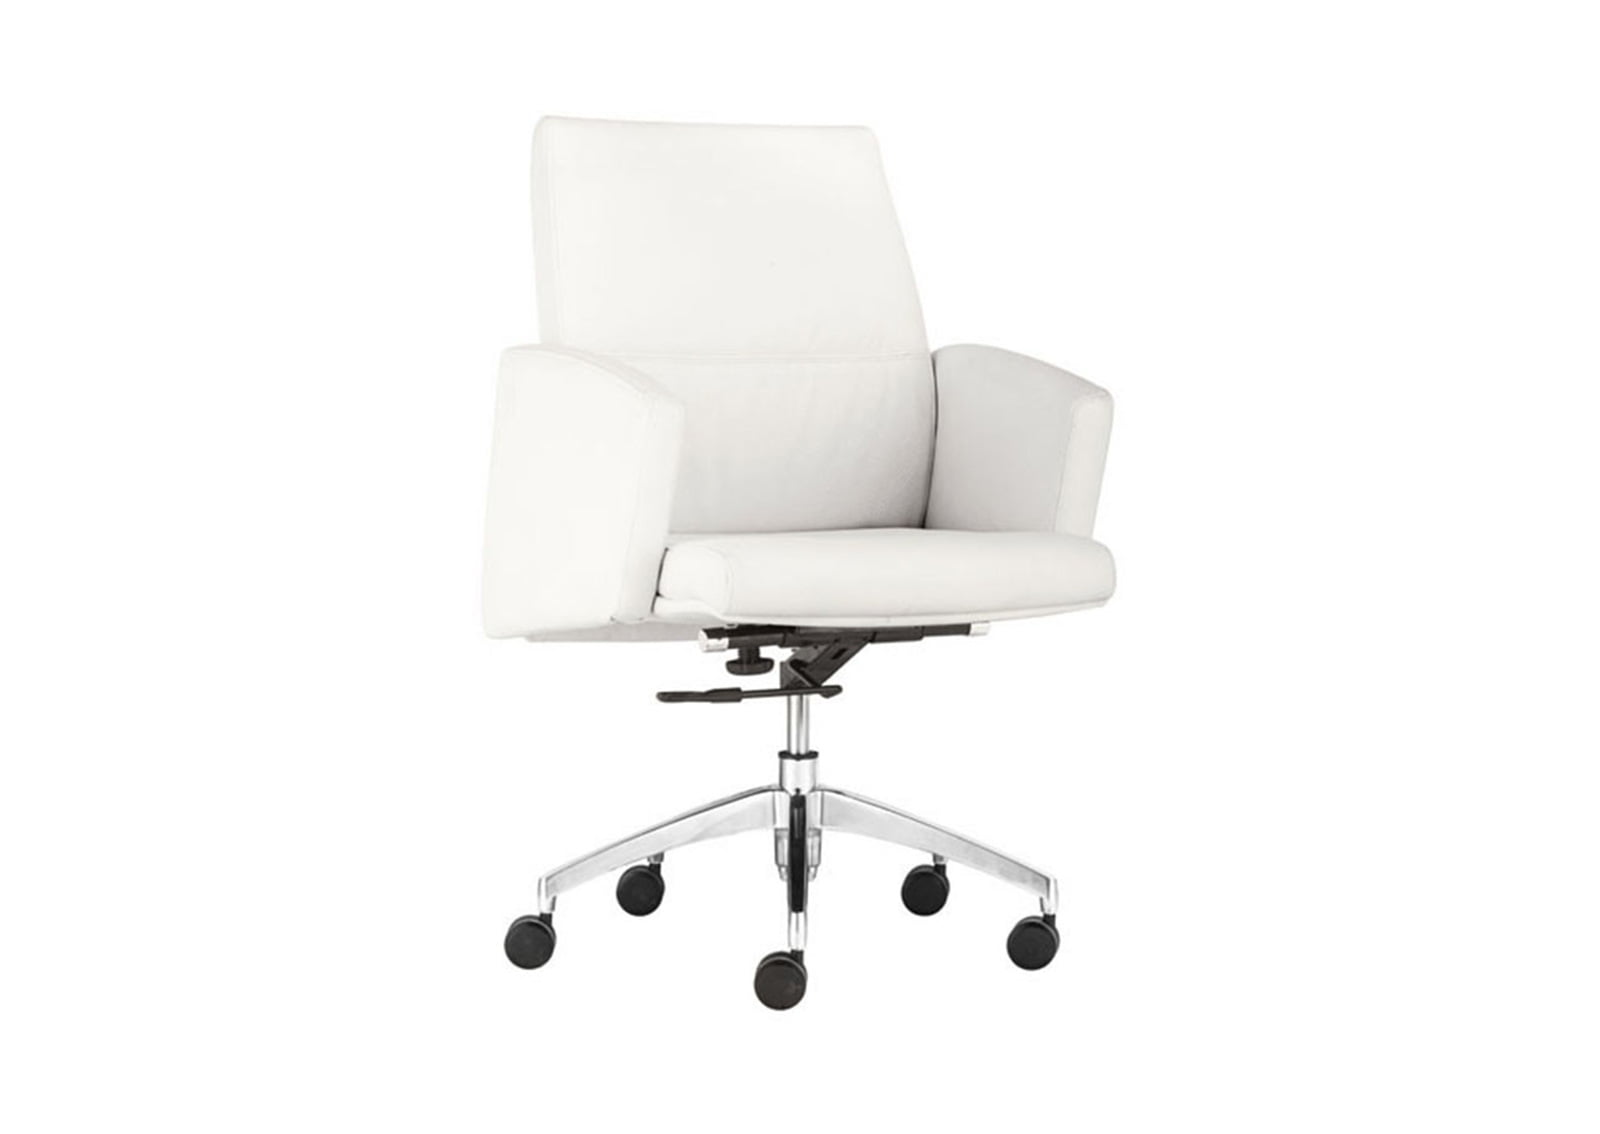 low back office chair fisher price musical chieftain white furnishplus